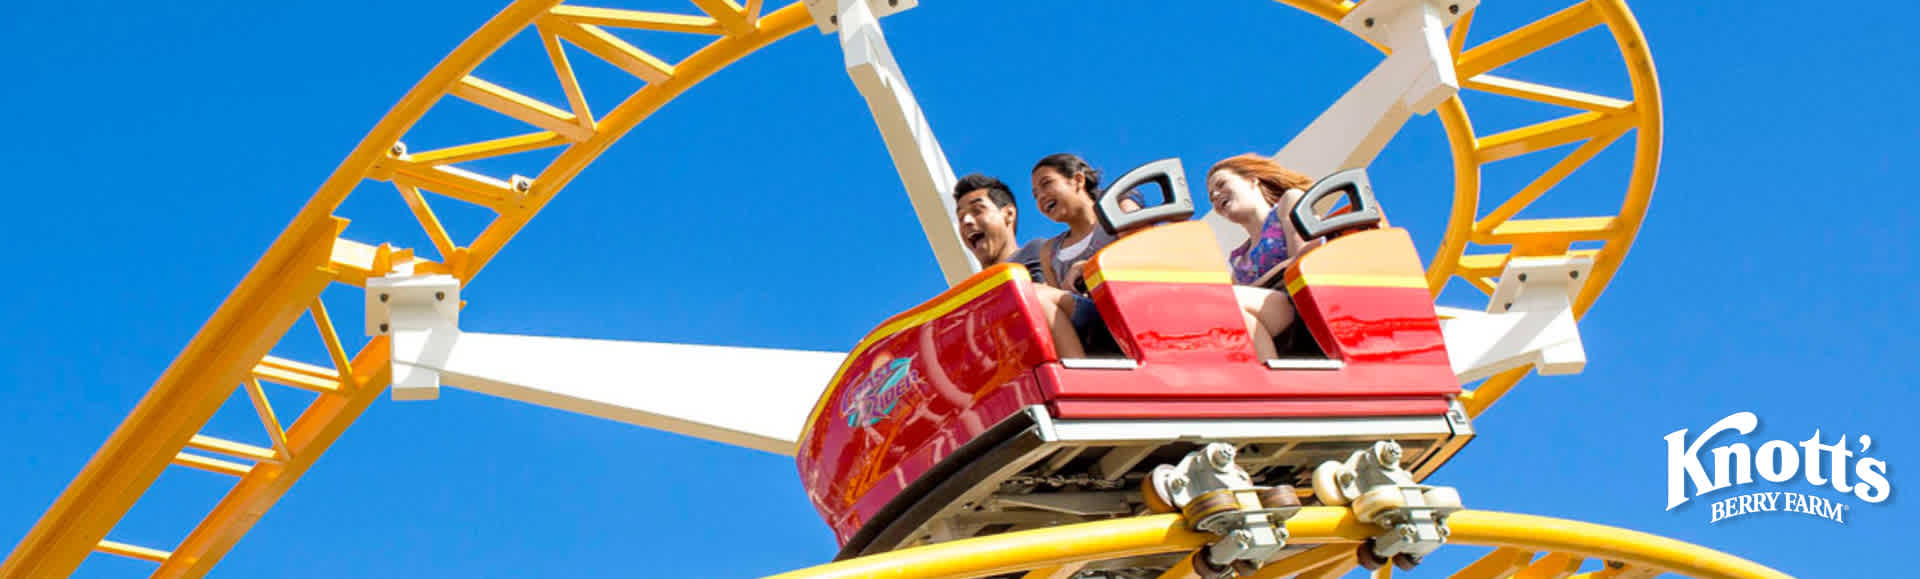 Knott's Berry Farm Discounted Tickets